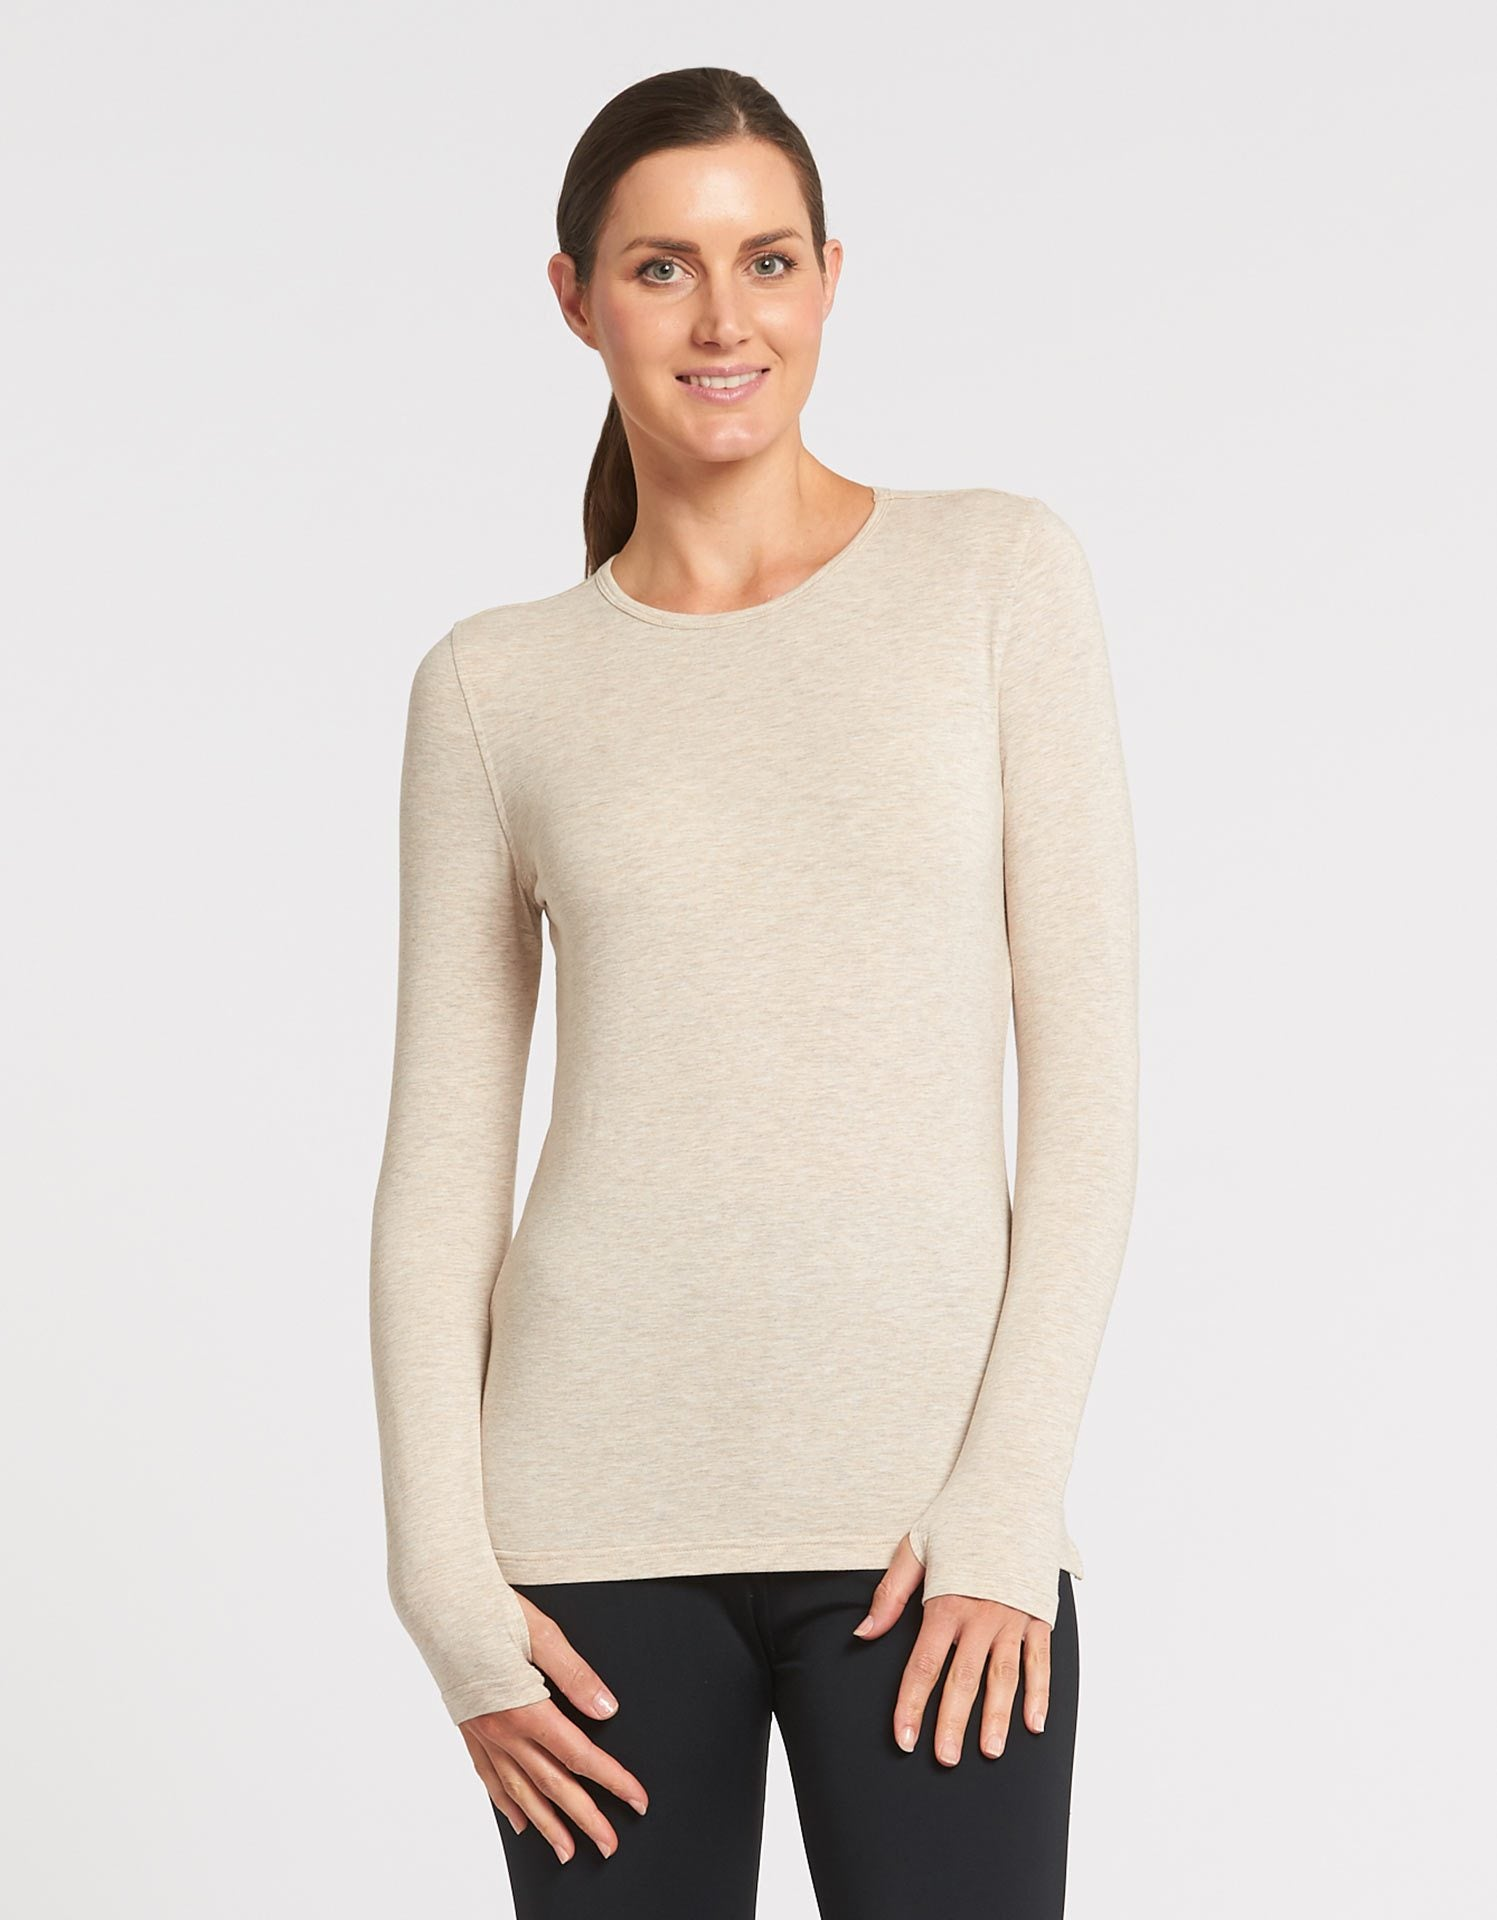 Solbari UPF 50+ Sun Protection Oatmeal Long Sleeve T-Shirt Sensitive Collection for Women